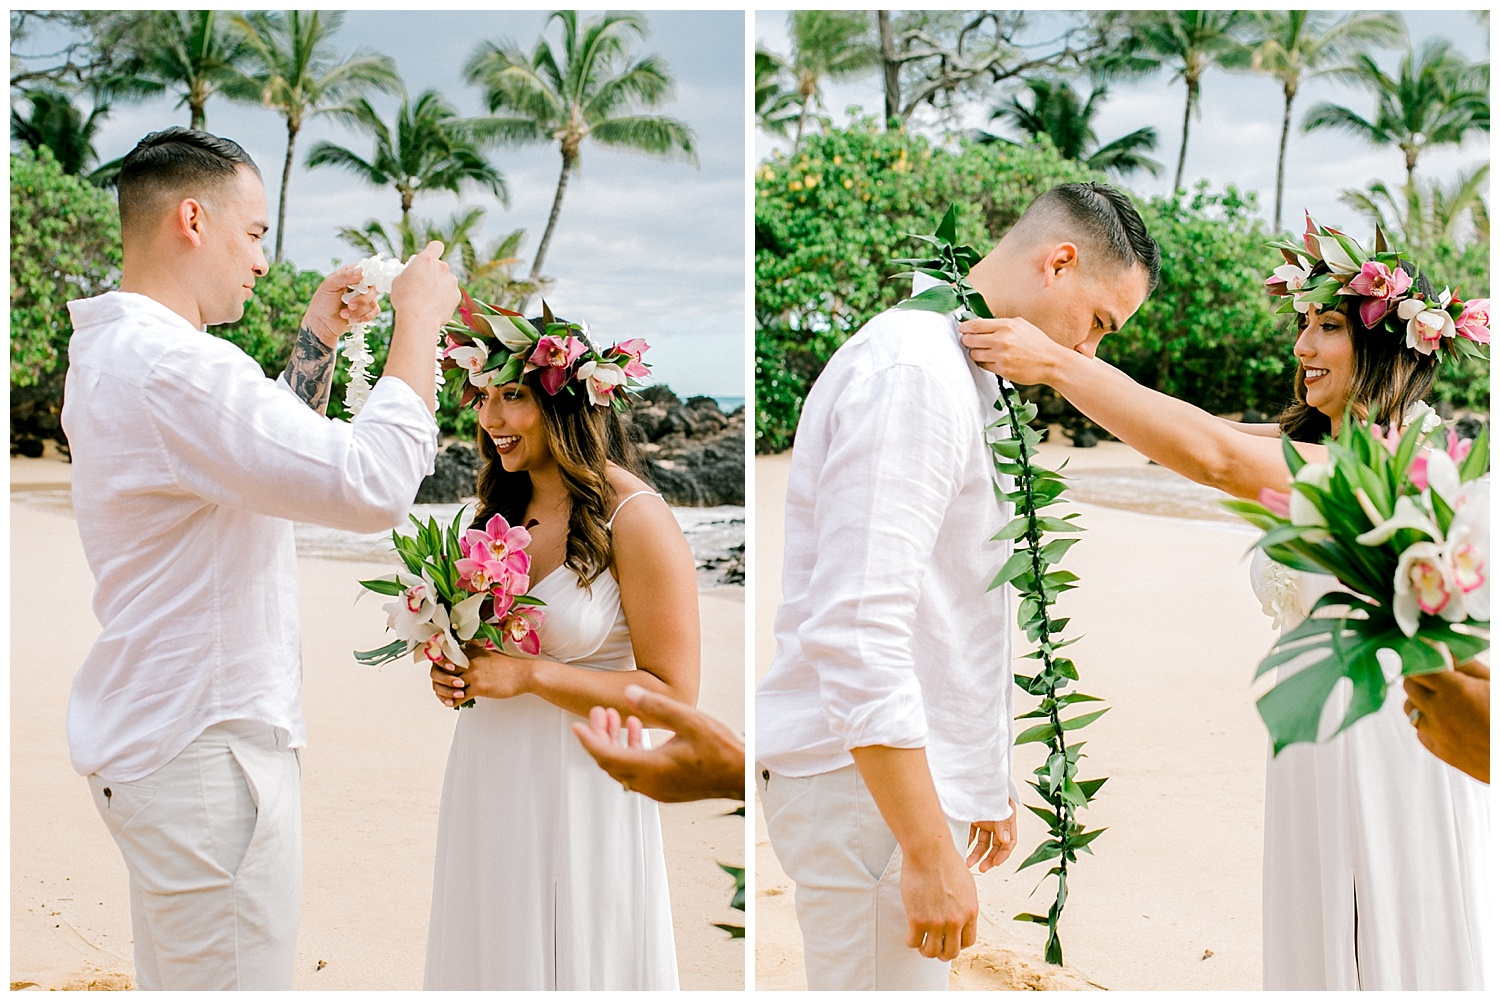 Bride and groom exchanging leis during Maui beach elopement